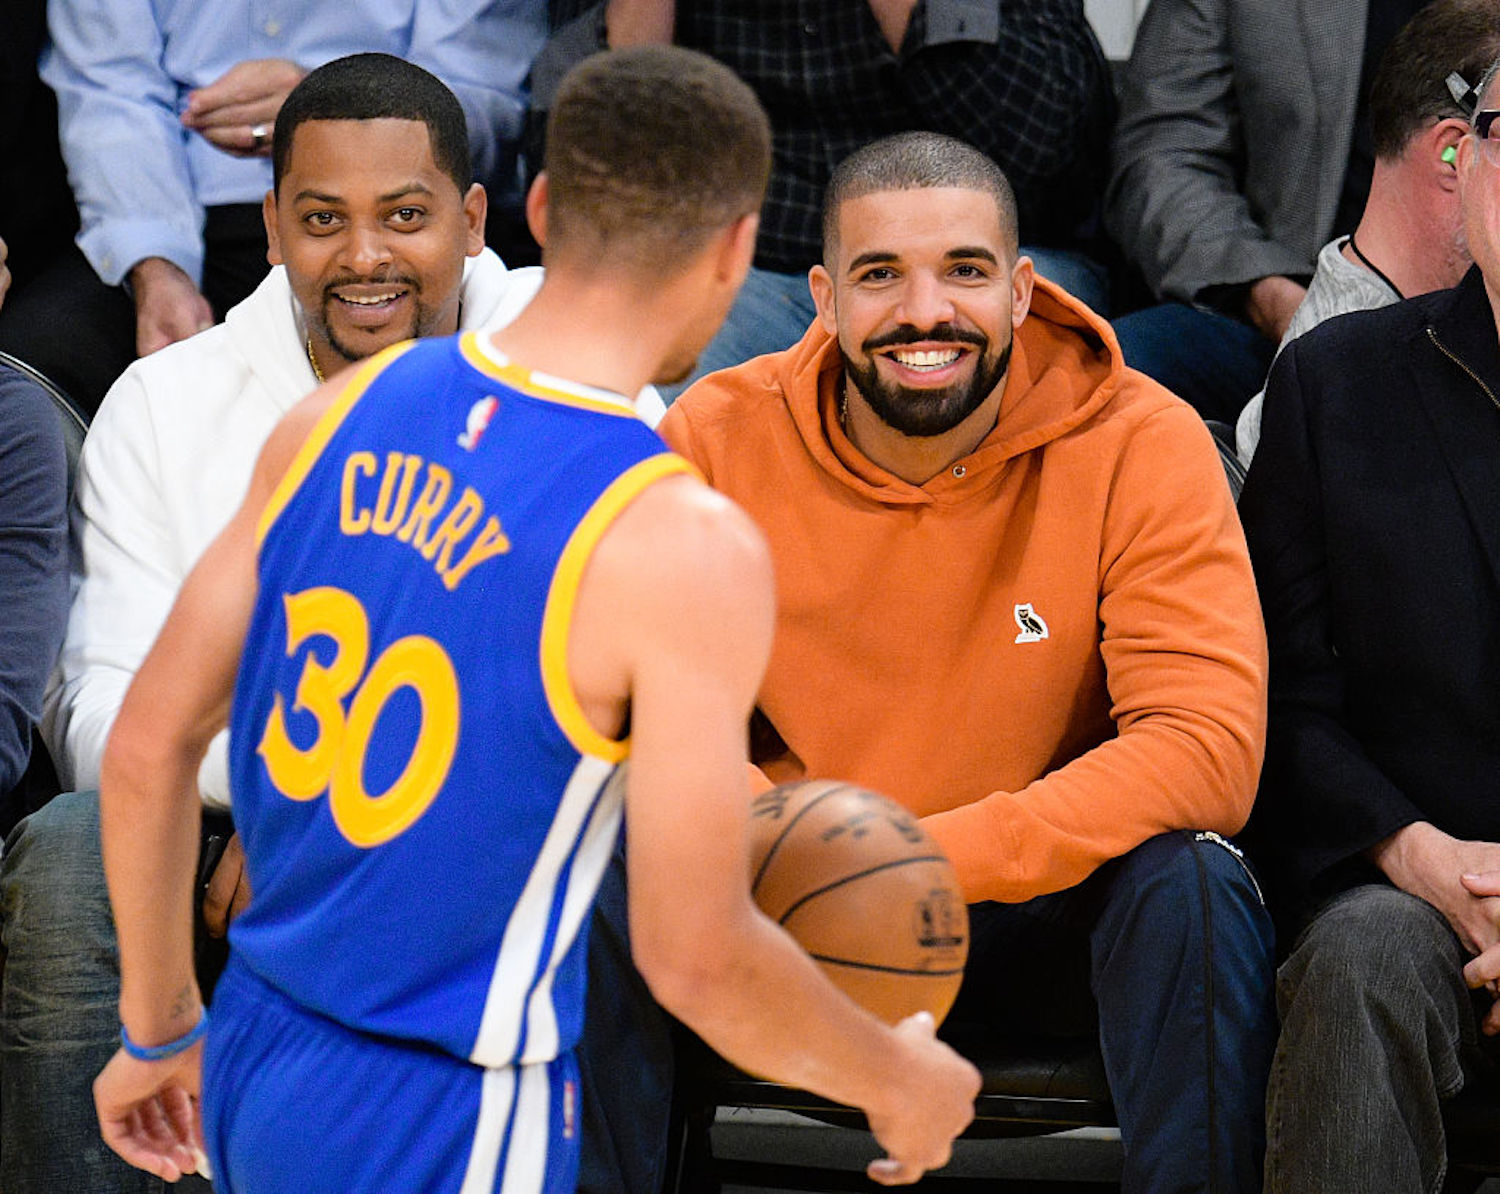 Warriors Head Coach Steve Kerr Once Fined Drake $500 for Making His 2 Star Players Late